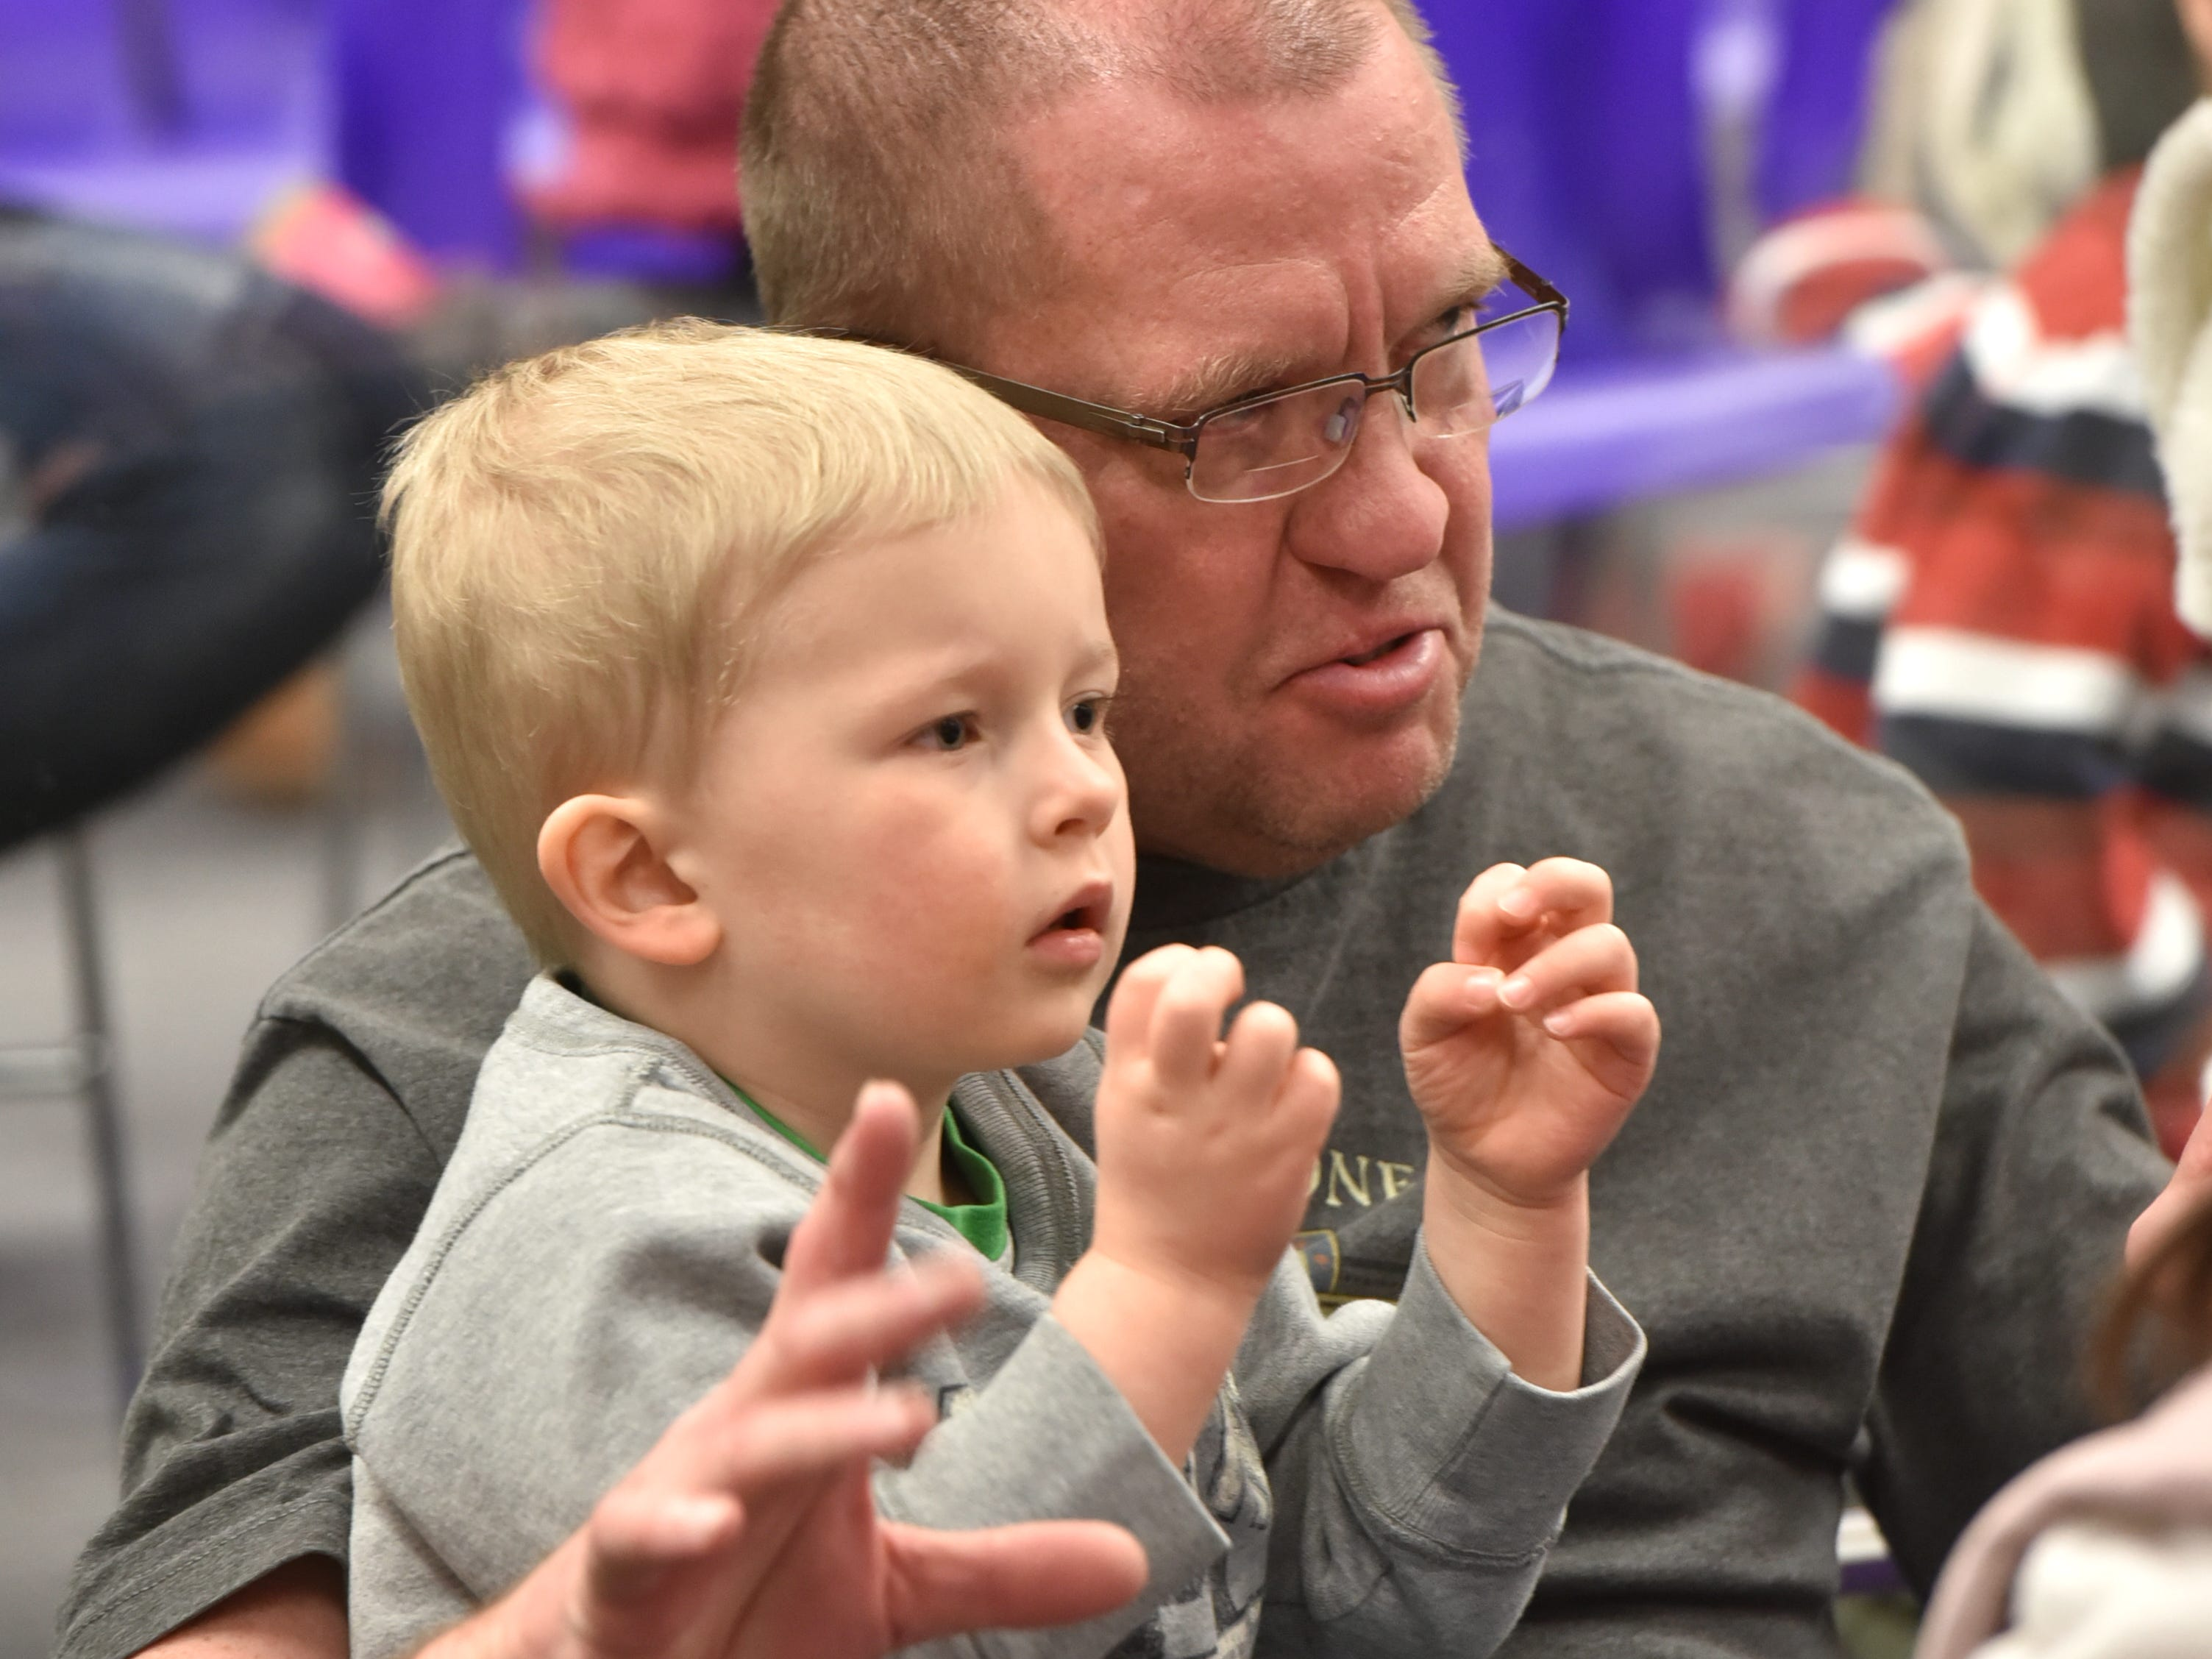 Joie Kramer and his grandson Finley Deppe, 3, work some magic hands to go along with Eugene Clark's show at the library.